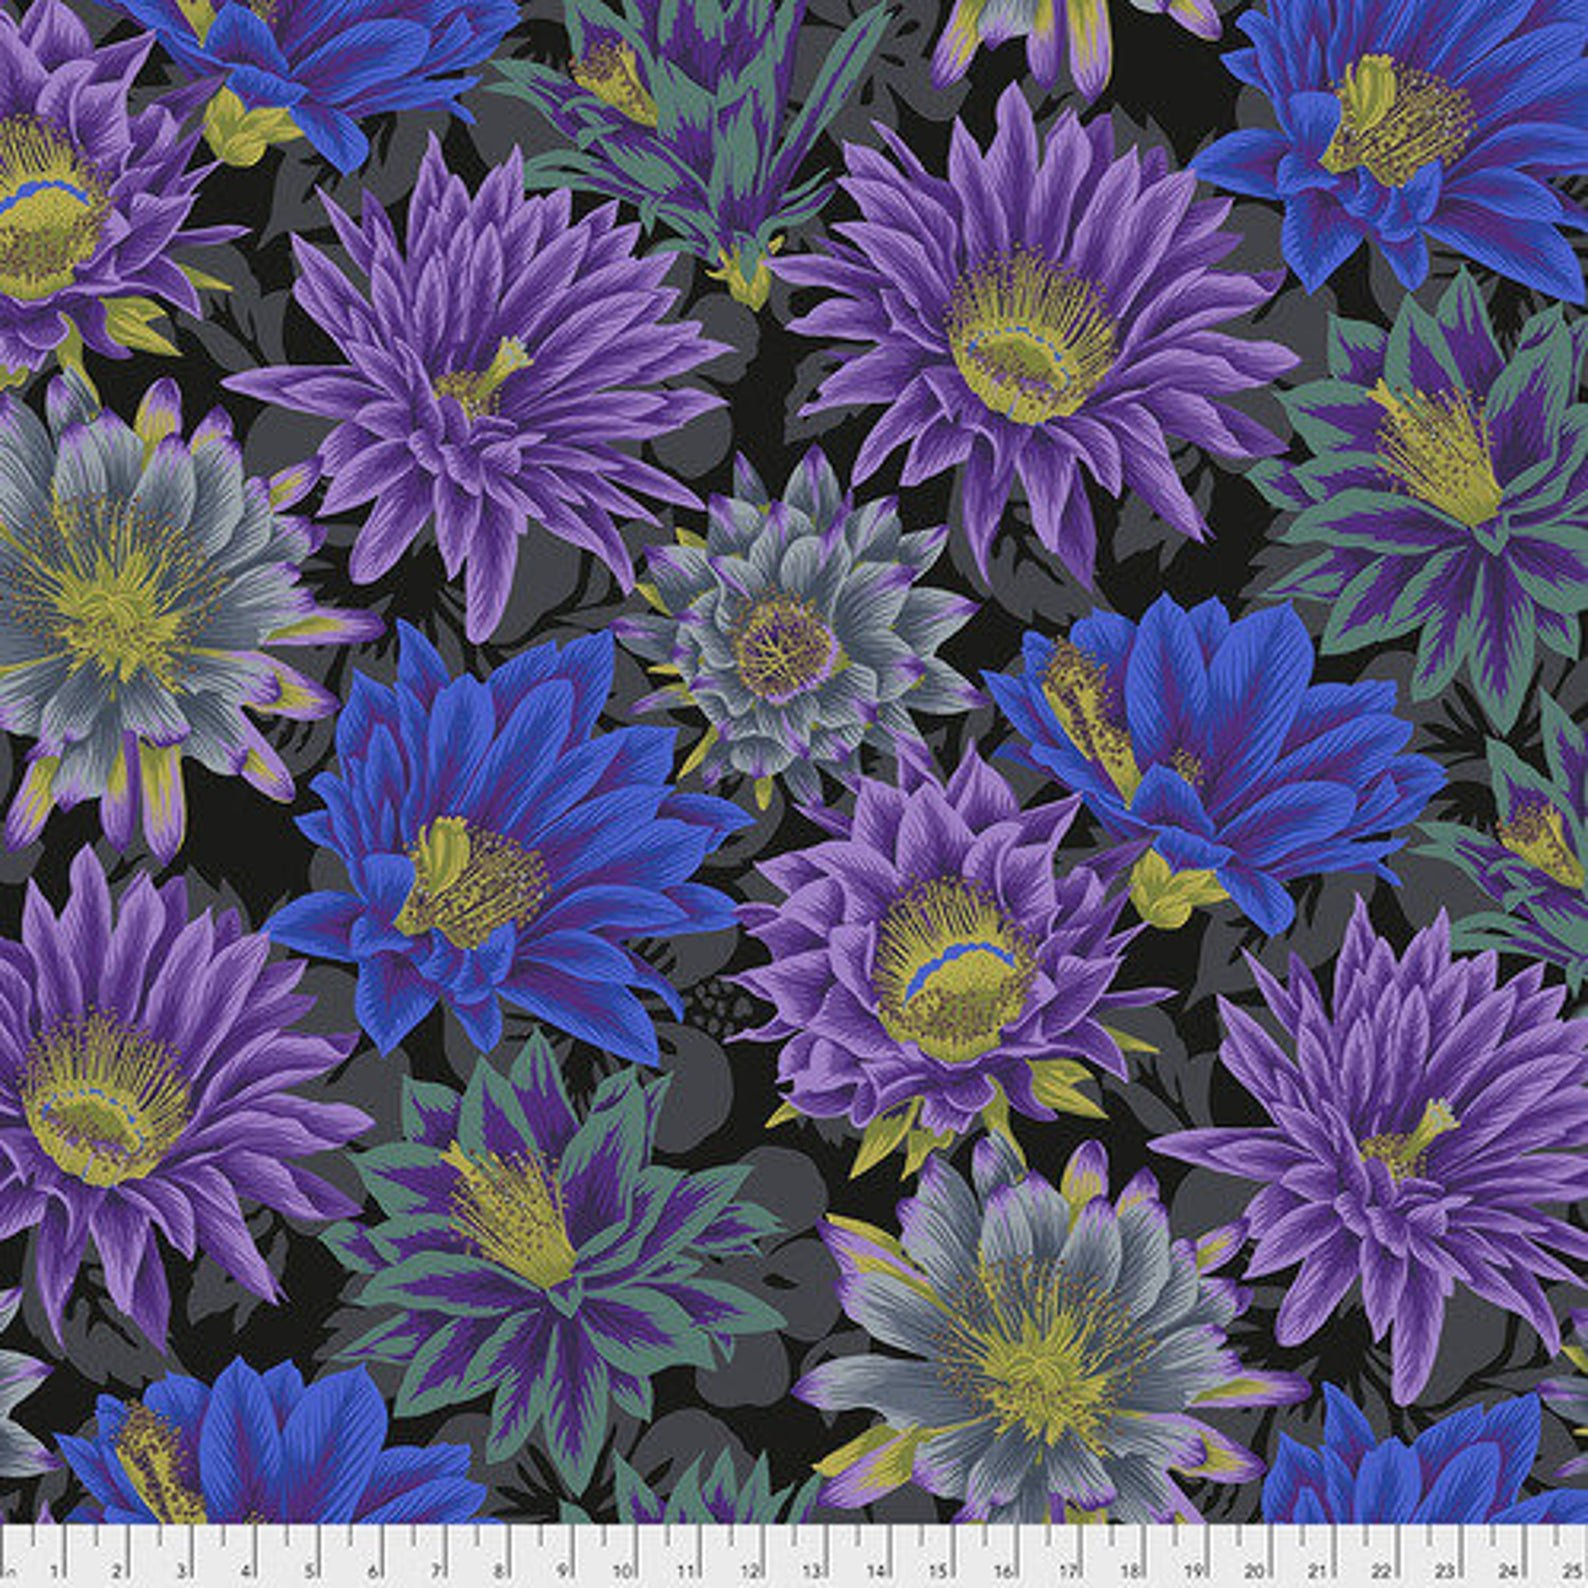 Kaffe Fassett, Cactus Flower in Black